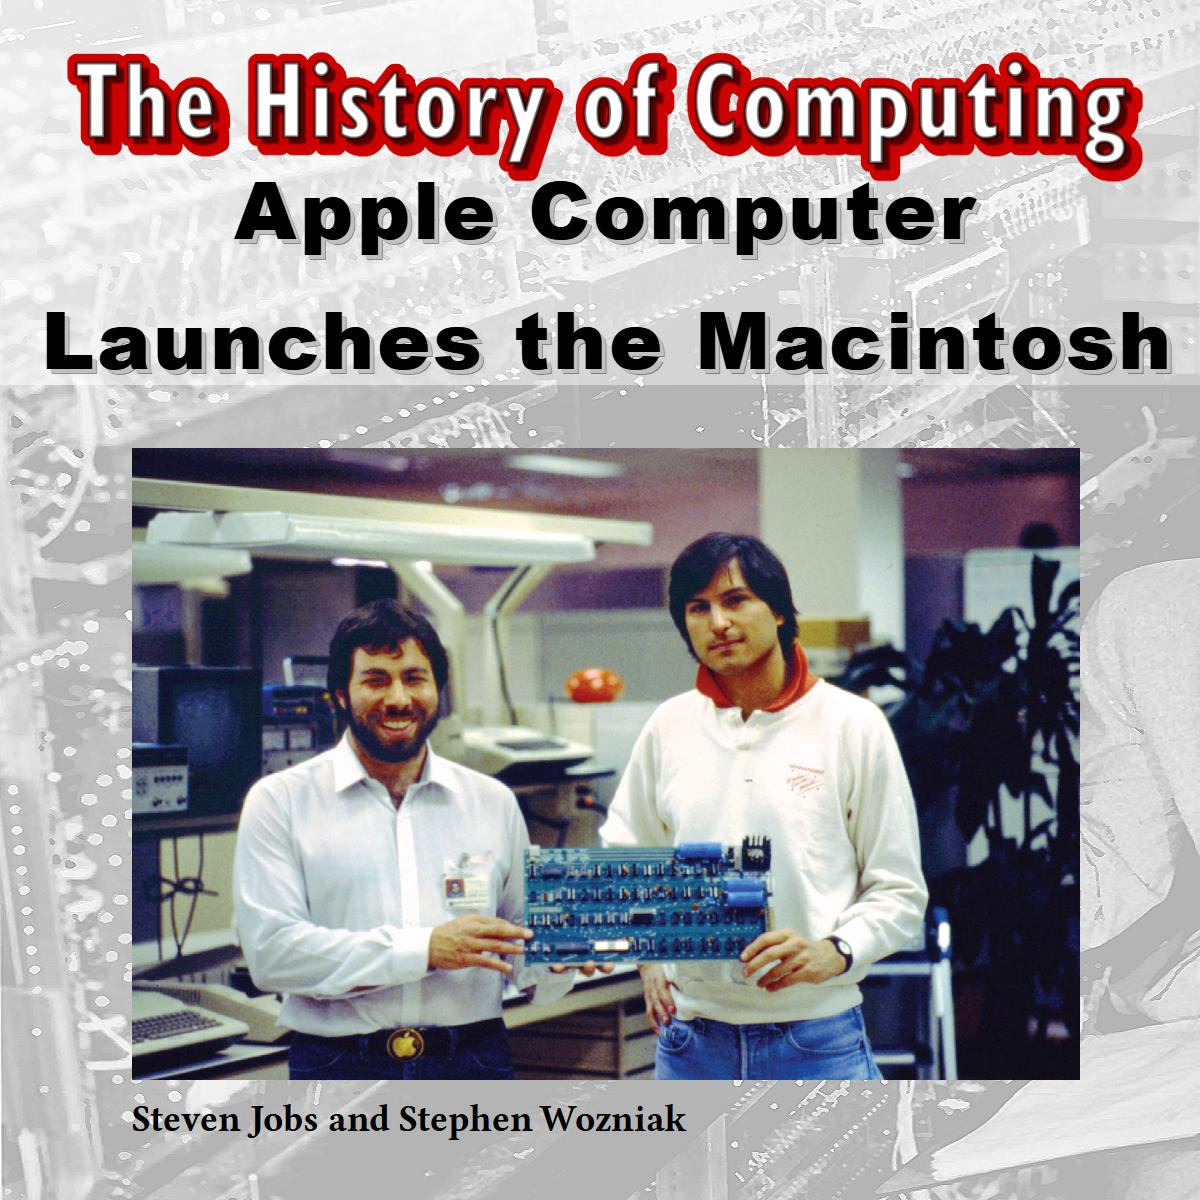 Apple Computer Launches the Macintosh